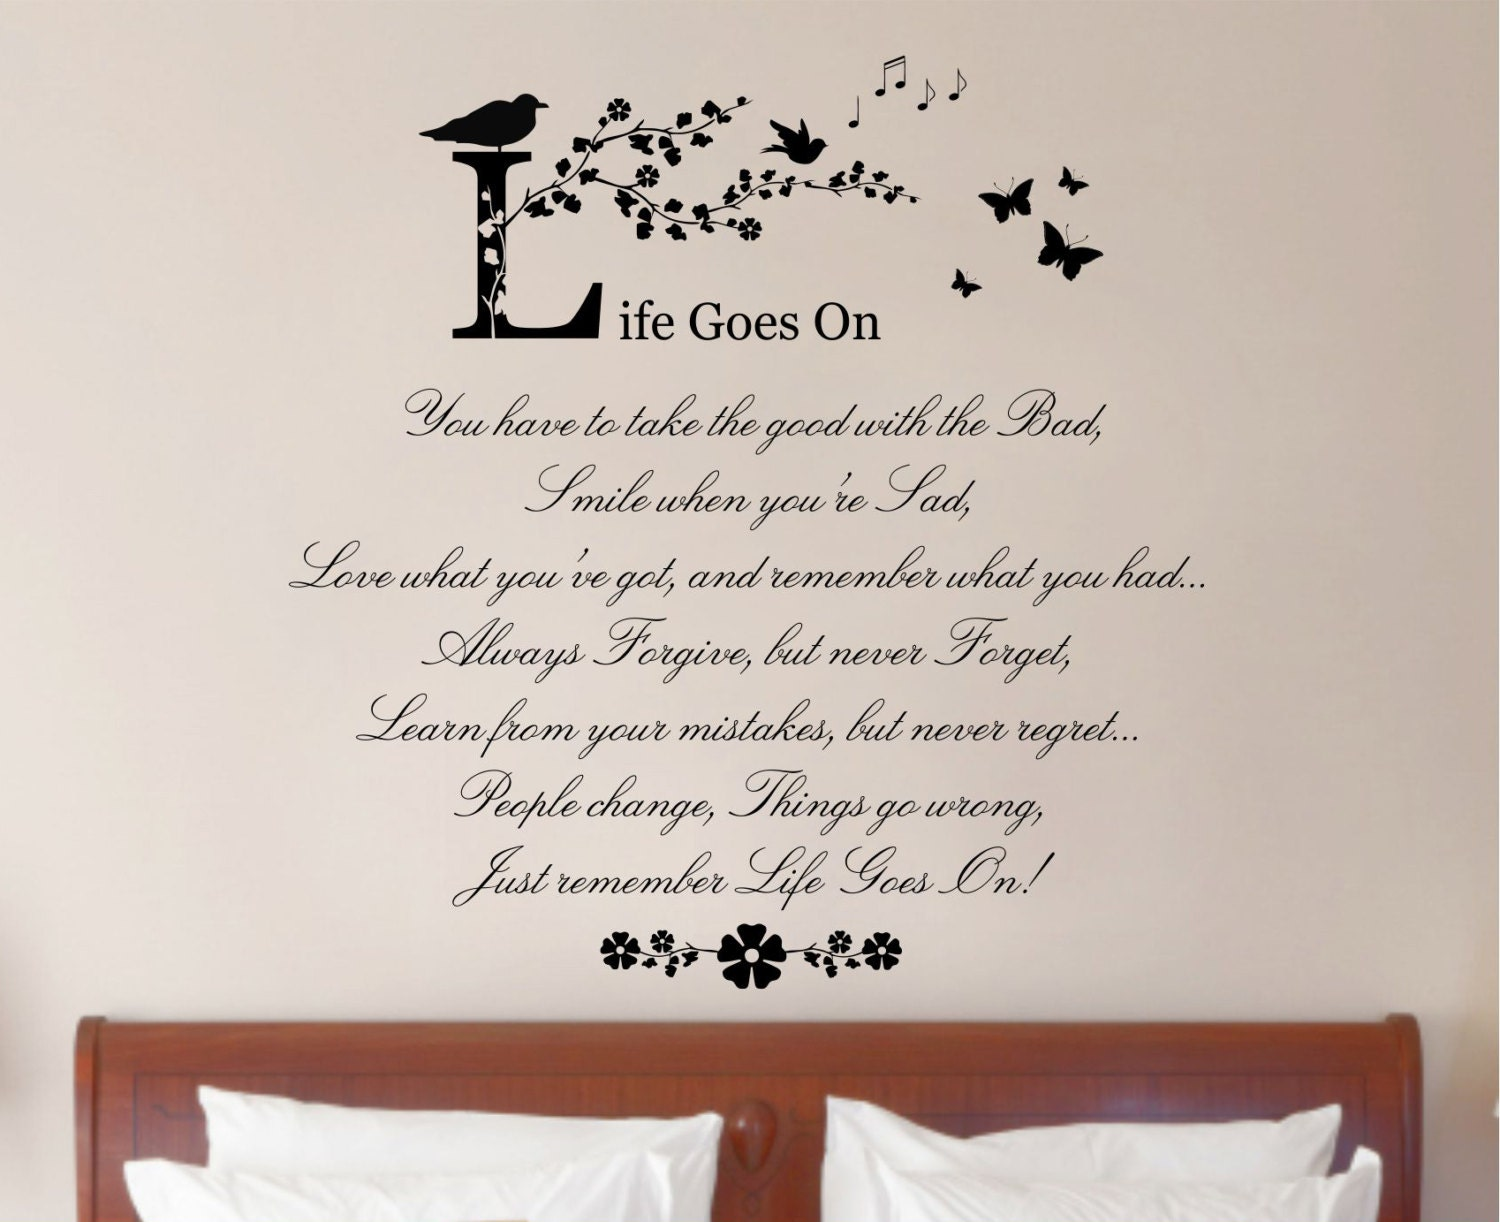 Life goes on quote vinyl wall art sticker decal mural home for Best quotes for wall art